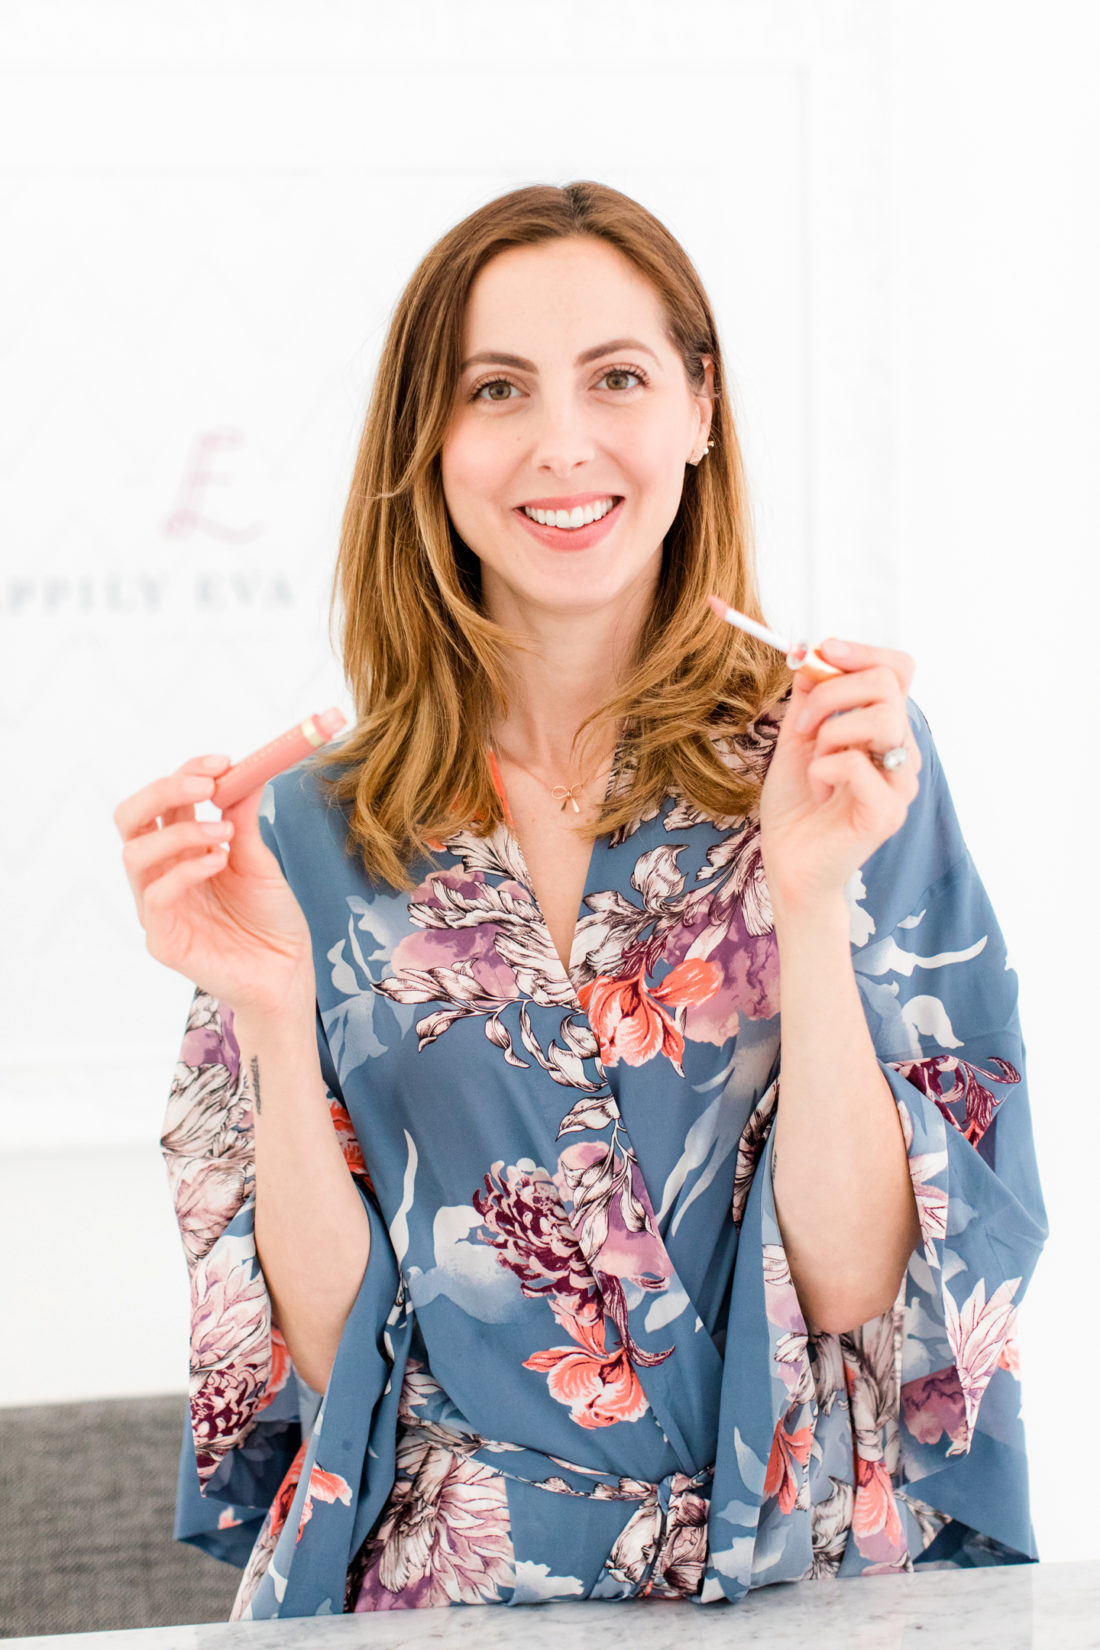 Eva Amurri Martino applies a light sweep of Beauty Counter lipgloss to add shine to her lips